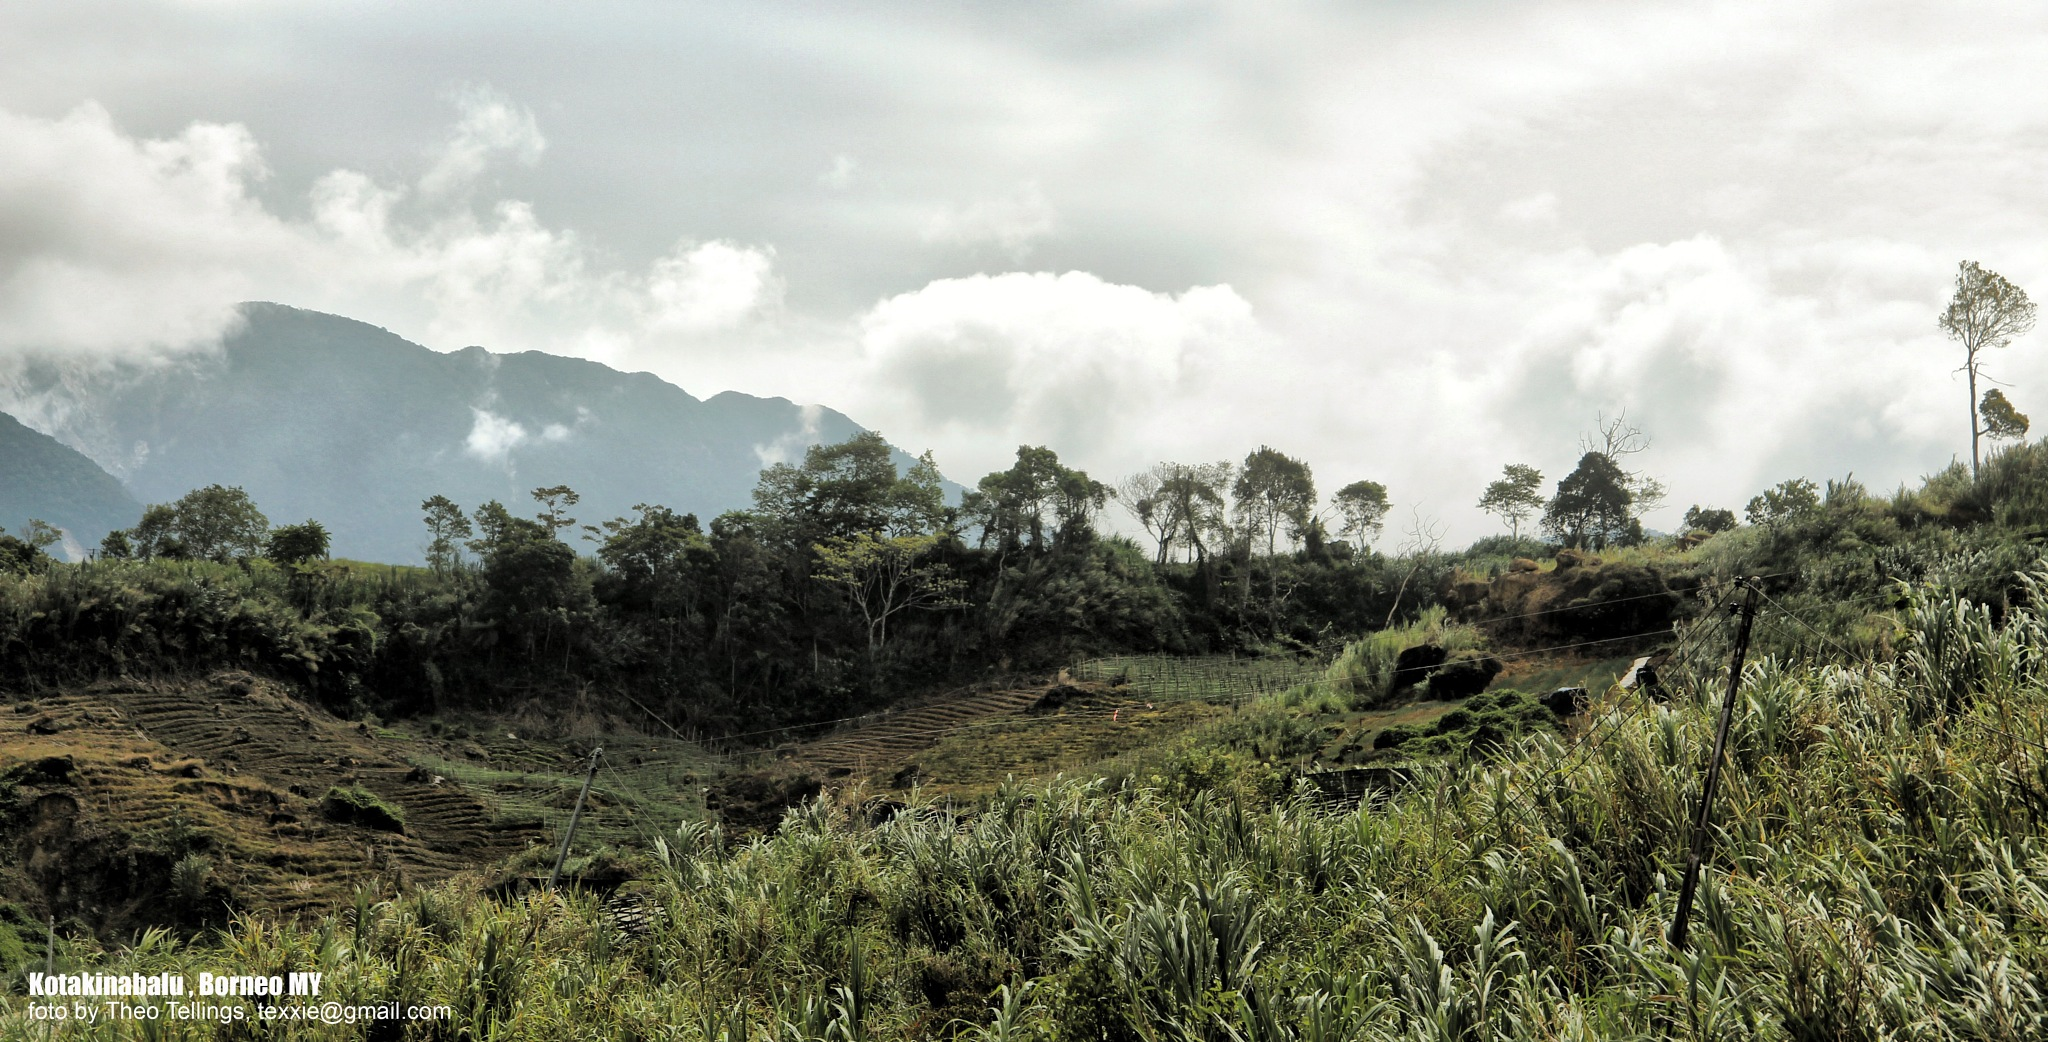 Borneo by Theo Tellings